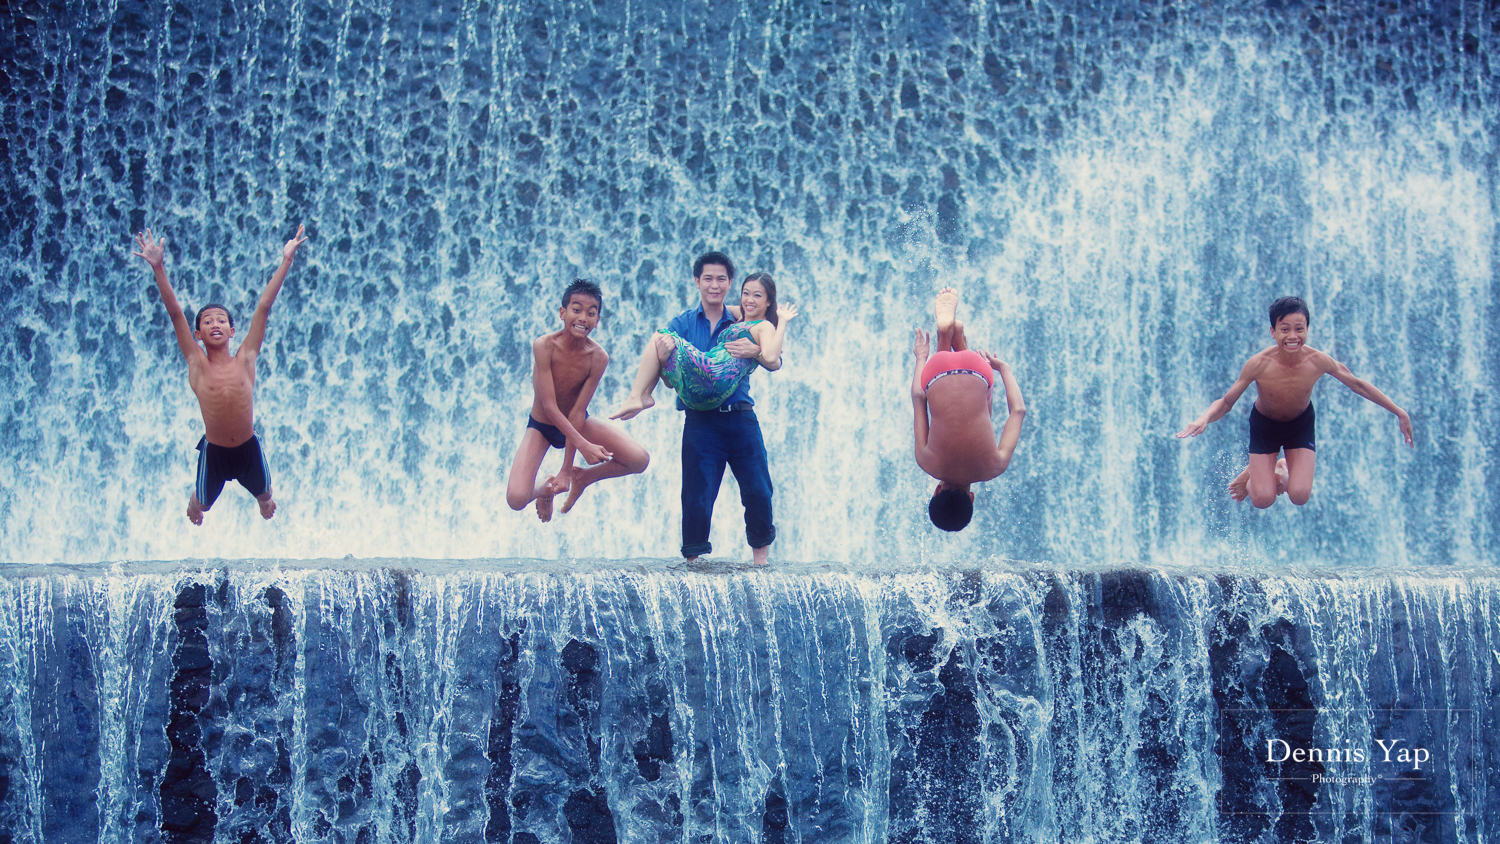 kevin samantha pre-wedding in bali water palace water dam by dennis yap photography malaysia wedding photographer-8.jpg